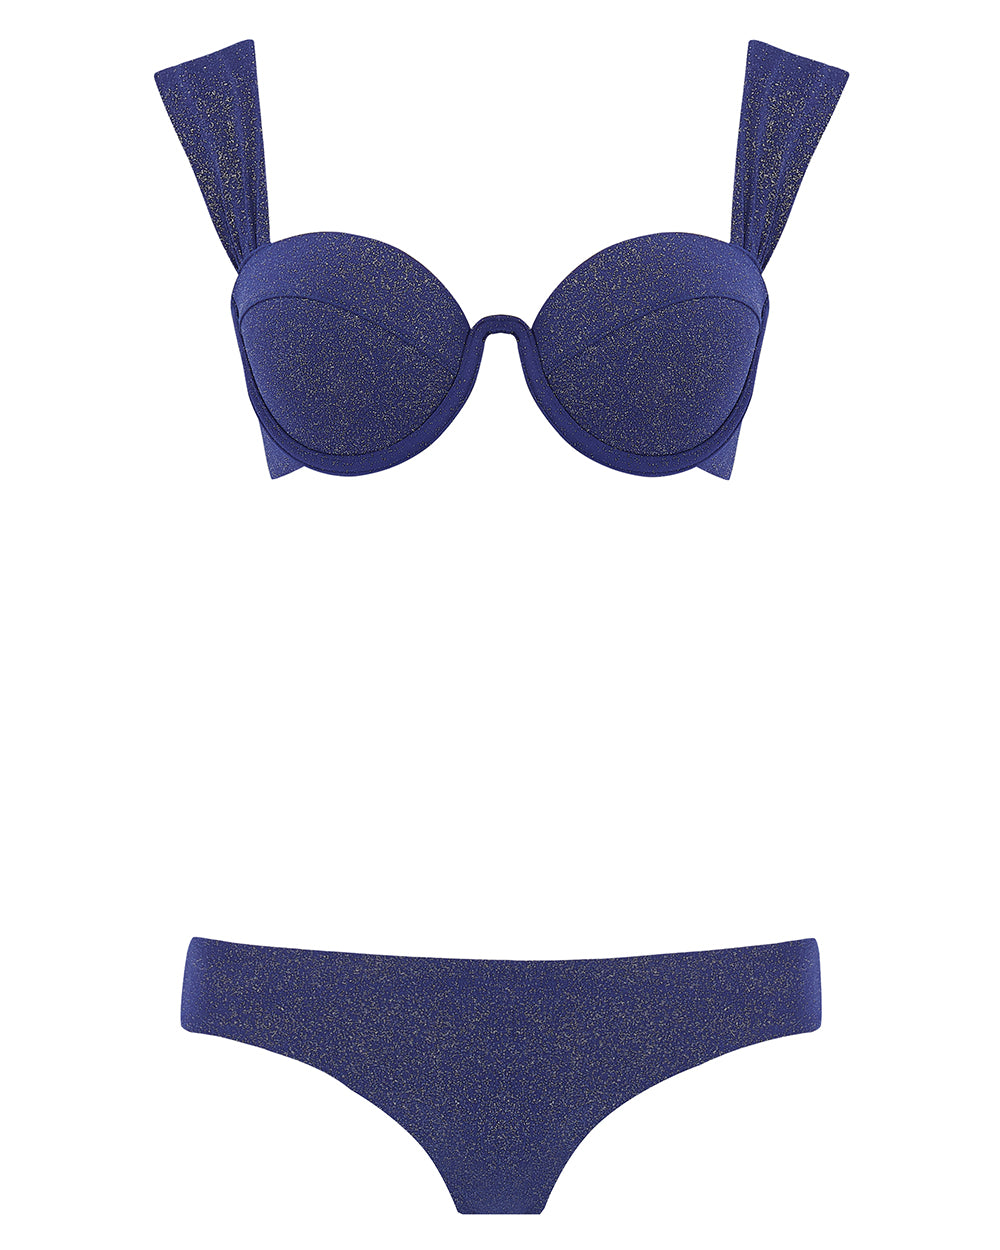 The Modern Bustier Set - Navy Glimmer (In Store ~ Harrods)